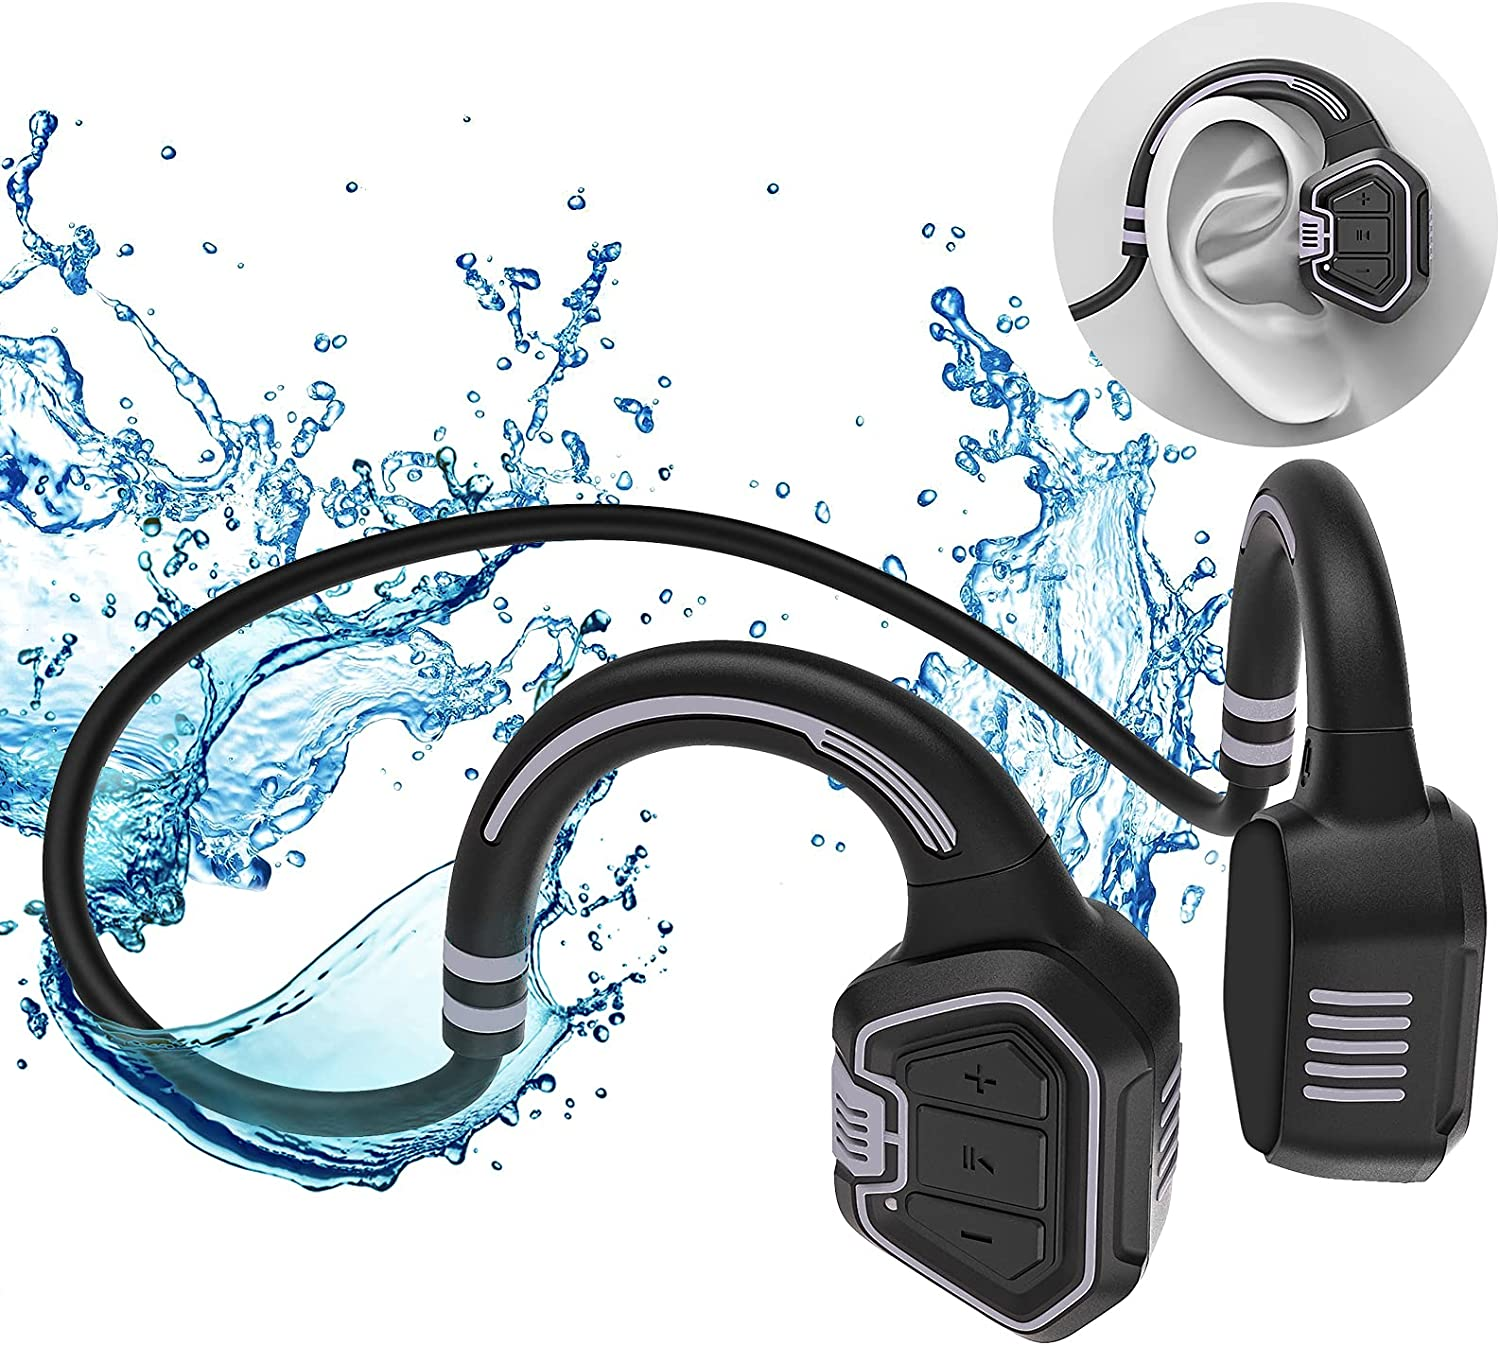 Open Ear Headphones,Wireless Bone Conduction Headset Bluetooth 5.1 with Mic Built-in 16G Memory,IP68 Waterproof Sweatproof - Music Answer Phone Call for Swimming Hiking Driving Bicycling